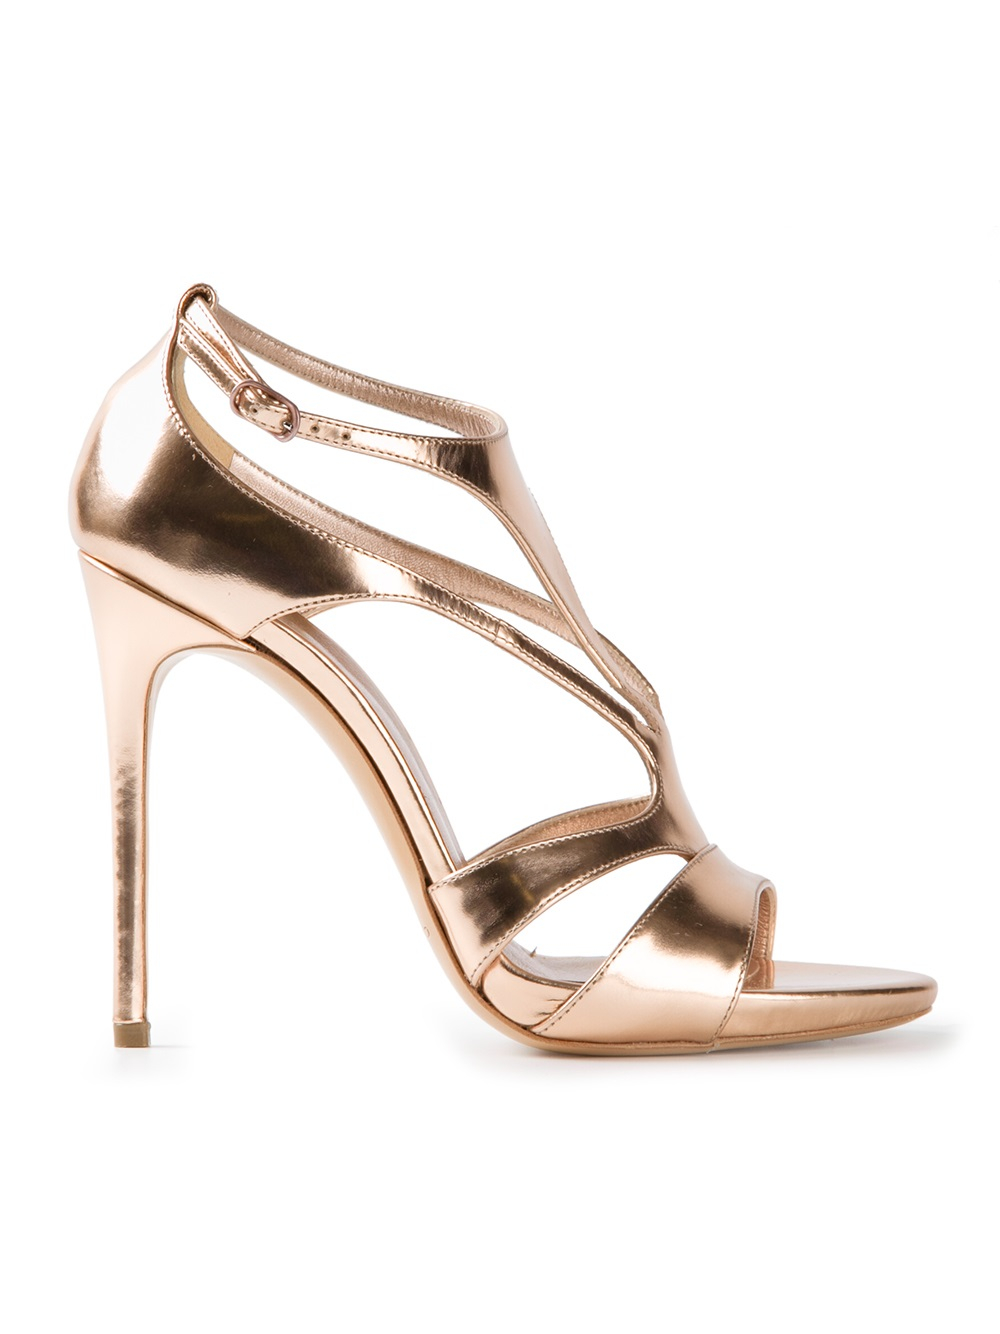 Casadei Strappy High Heel Sandals in Metallic | Lyst